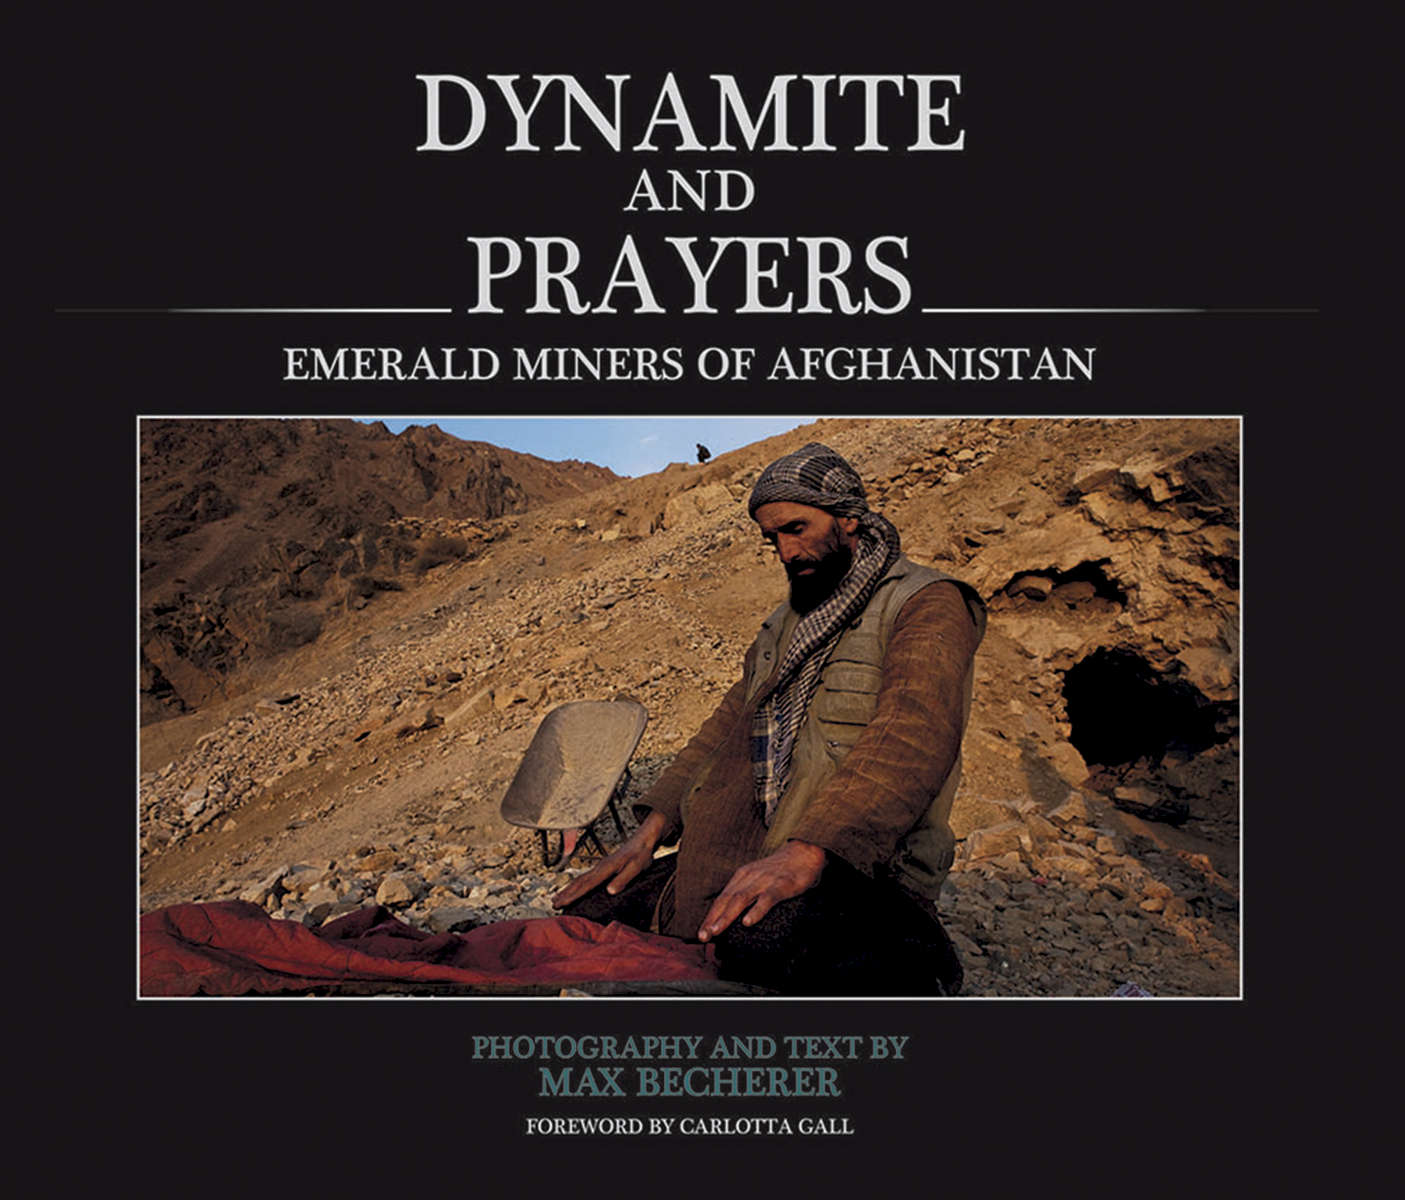 Cover of the Book \{quote}Dynamite and Prayers: Emerals Miners of Afghanistan\{quote} by Max Becherer with a foreword by Carlotta Gall. ( Photo by Max Becherer )